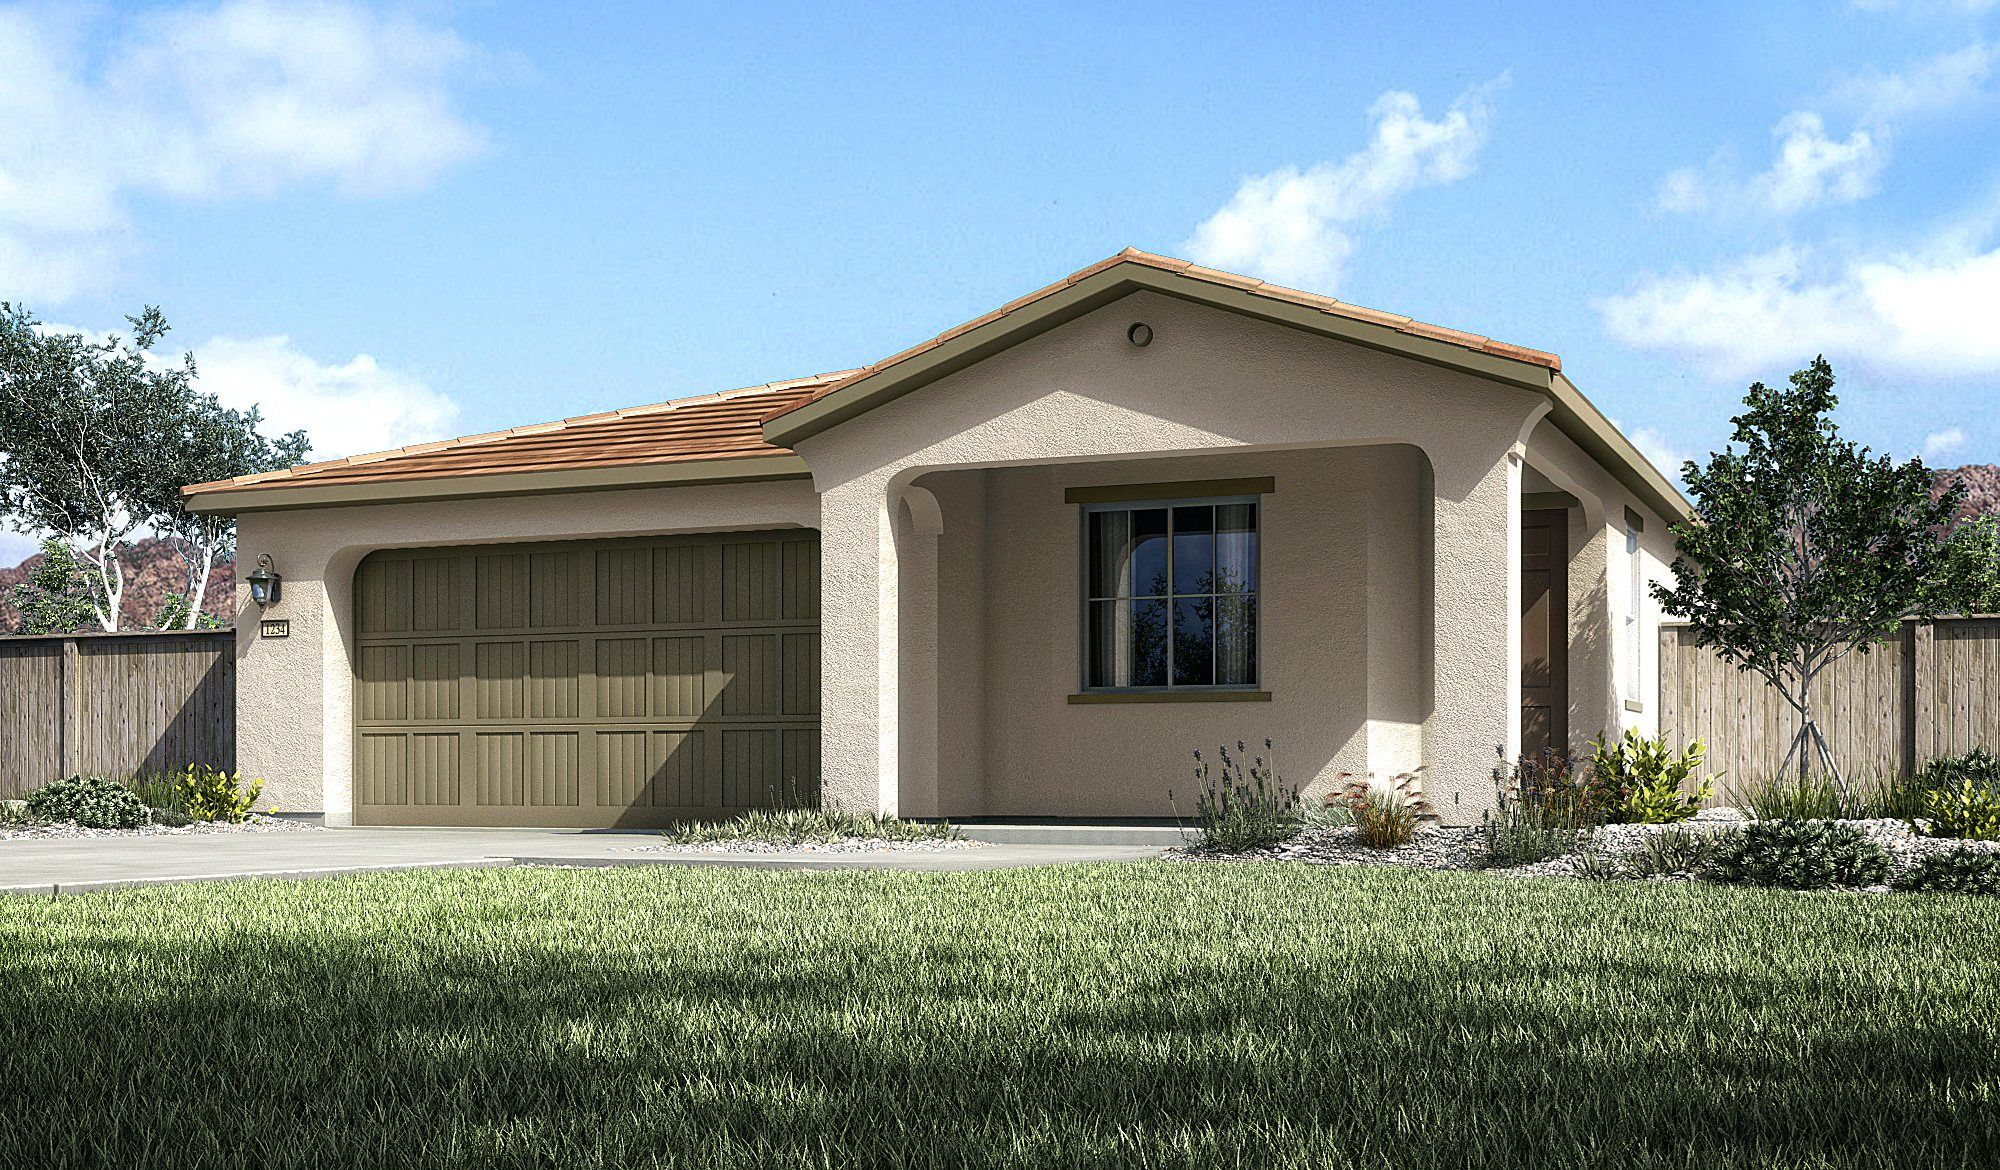 Single Family for Sale at Sage Meadow At Damonte Ranch - The Tule 10285 Rollins Drive Reno, Nevada 89521 United States